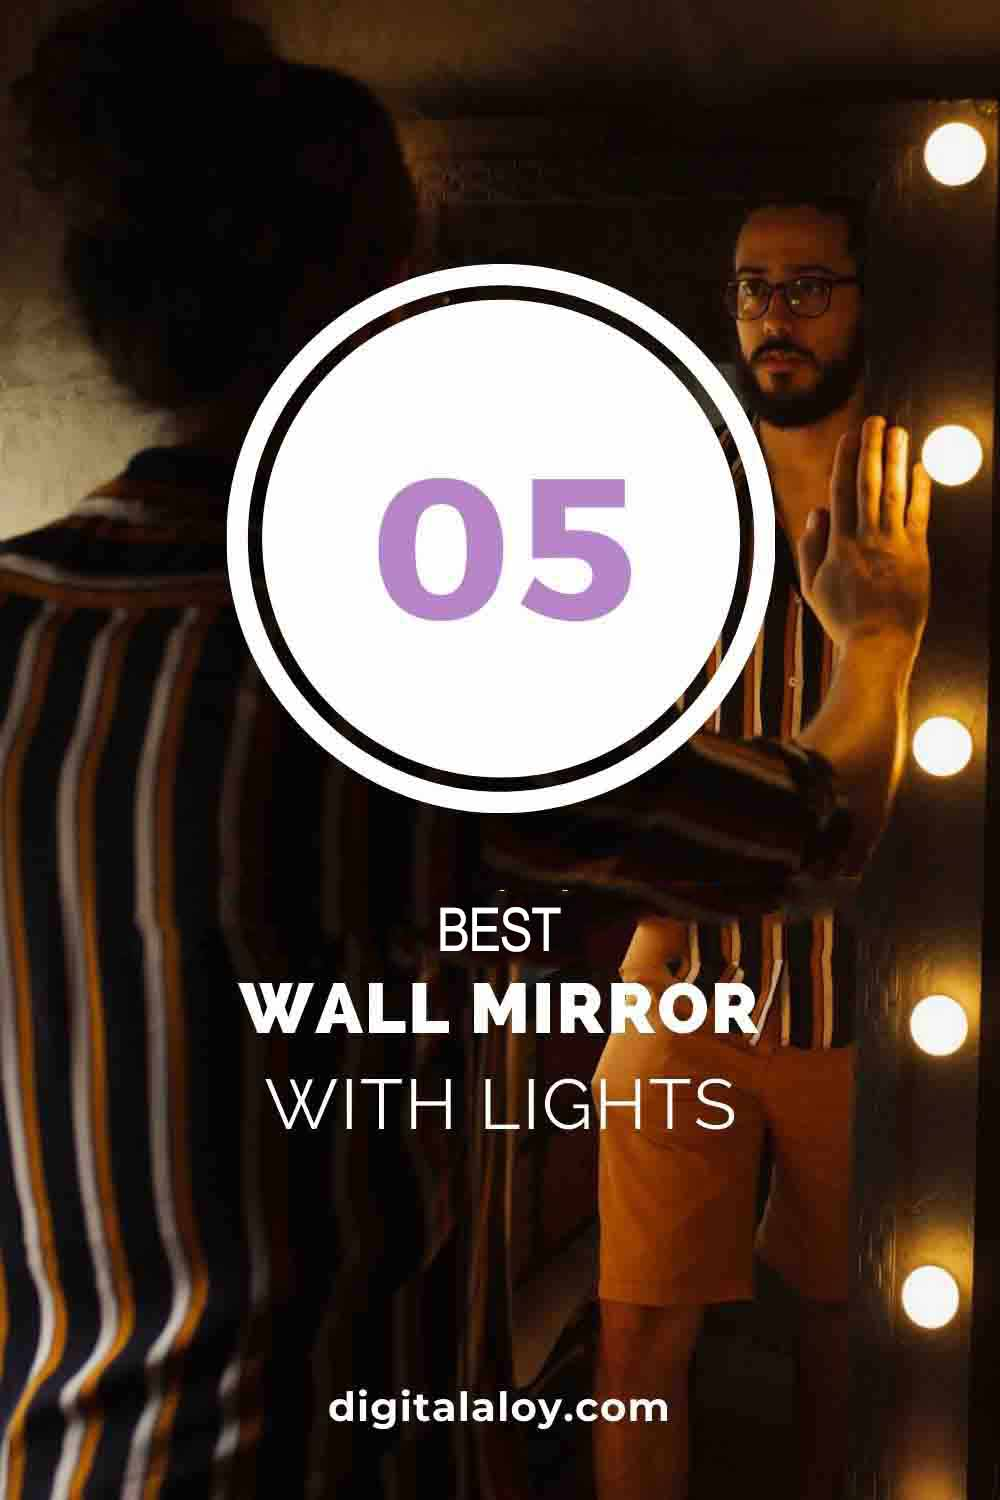 Best Wall Mirror with Lights pin